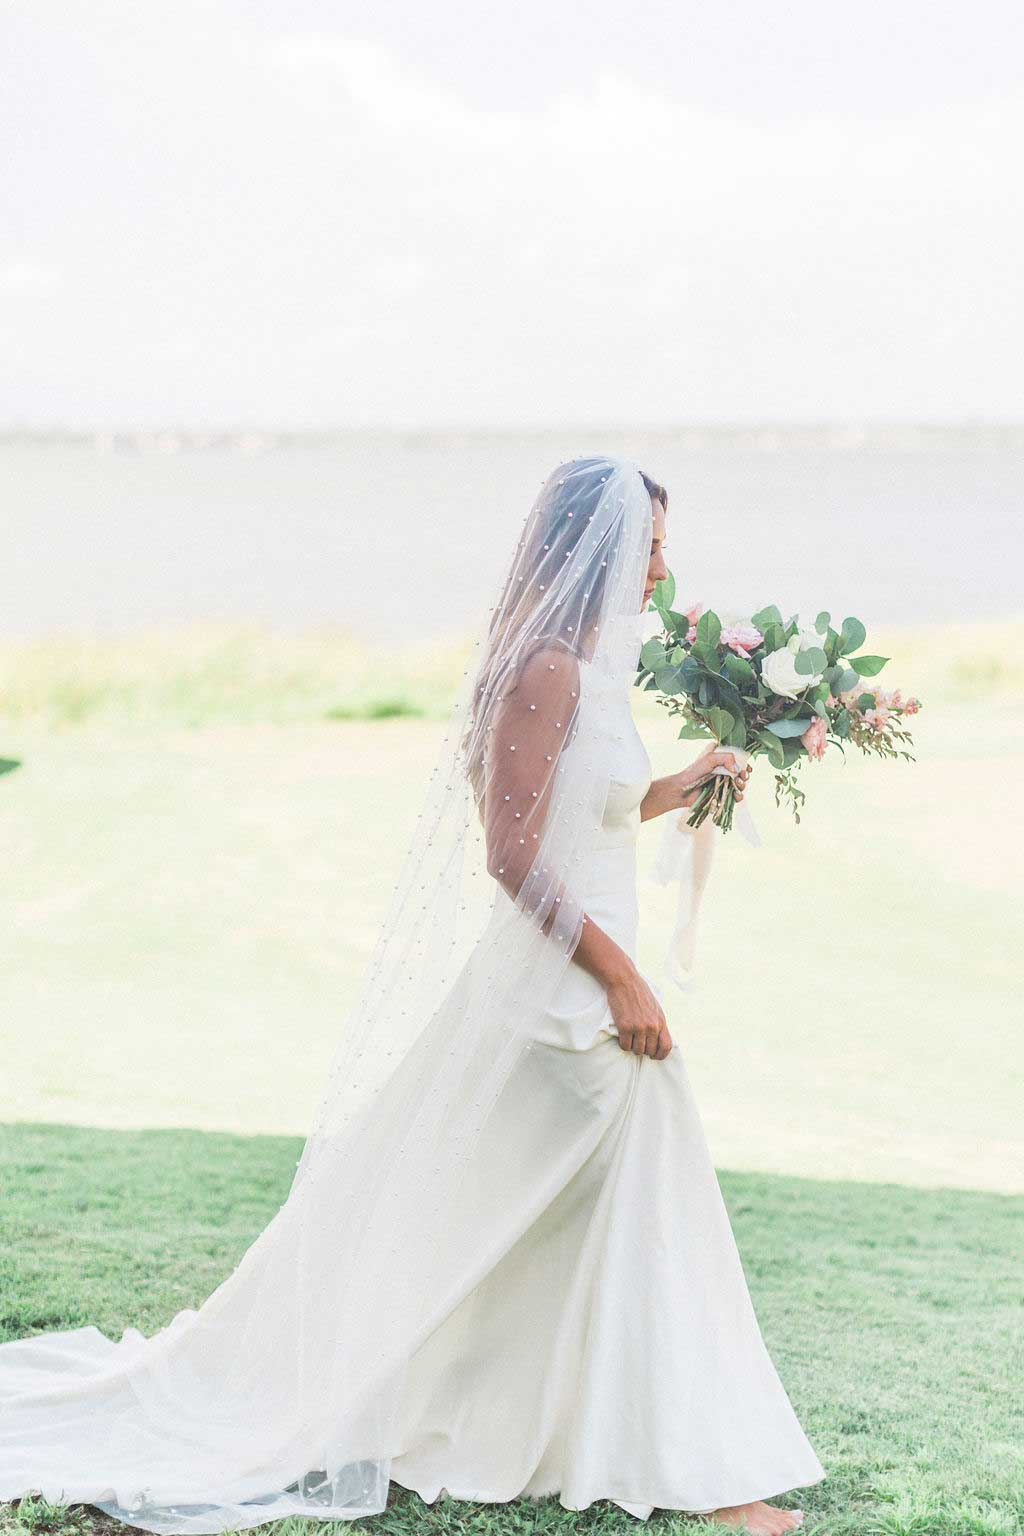 Bride walks outside in grass wearing chapel length Zinnia pearl bridal veil by Mauve et Blush and holding bouquet